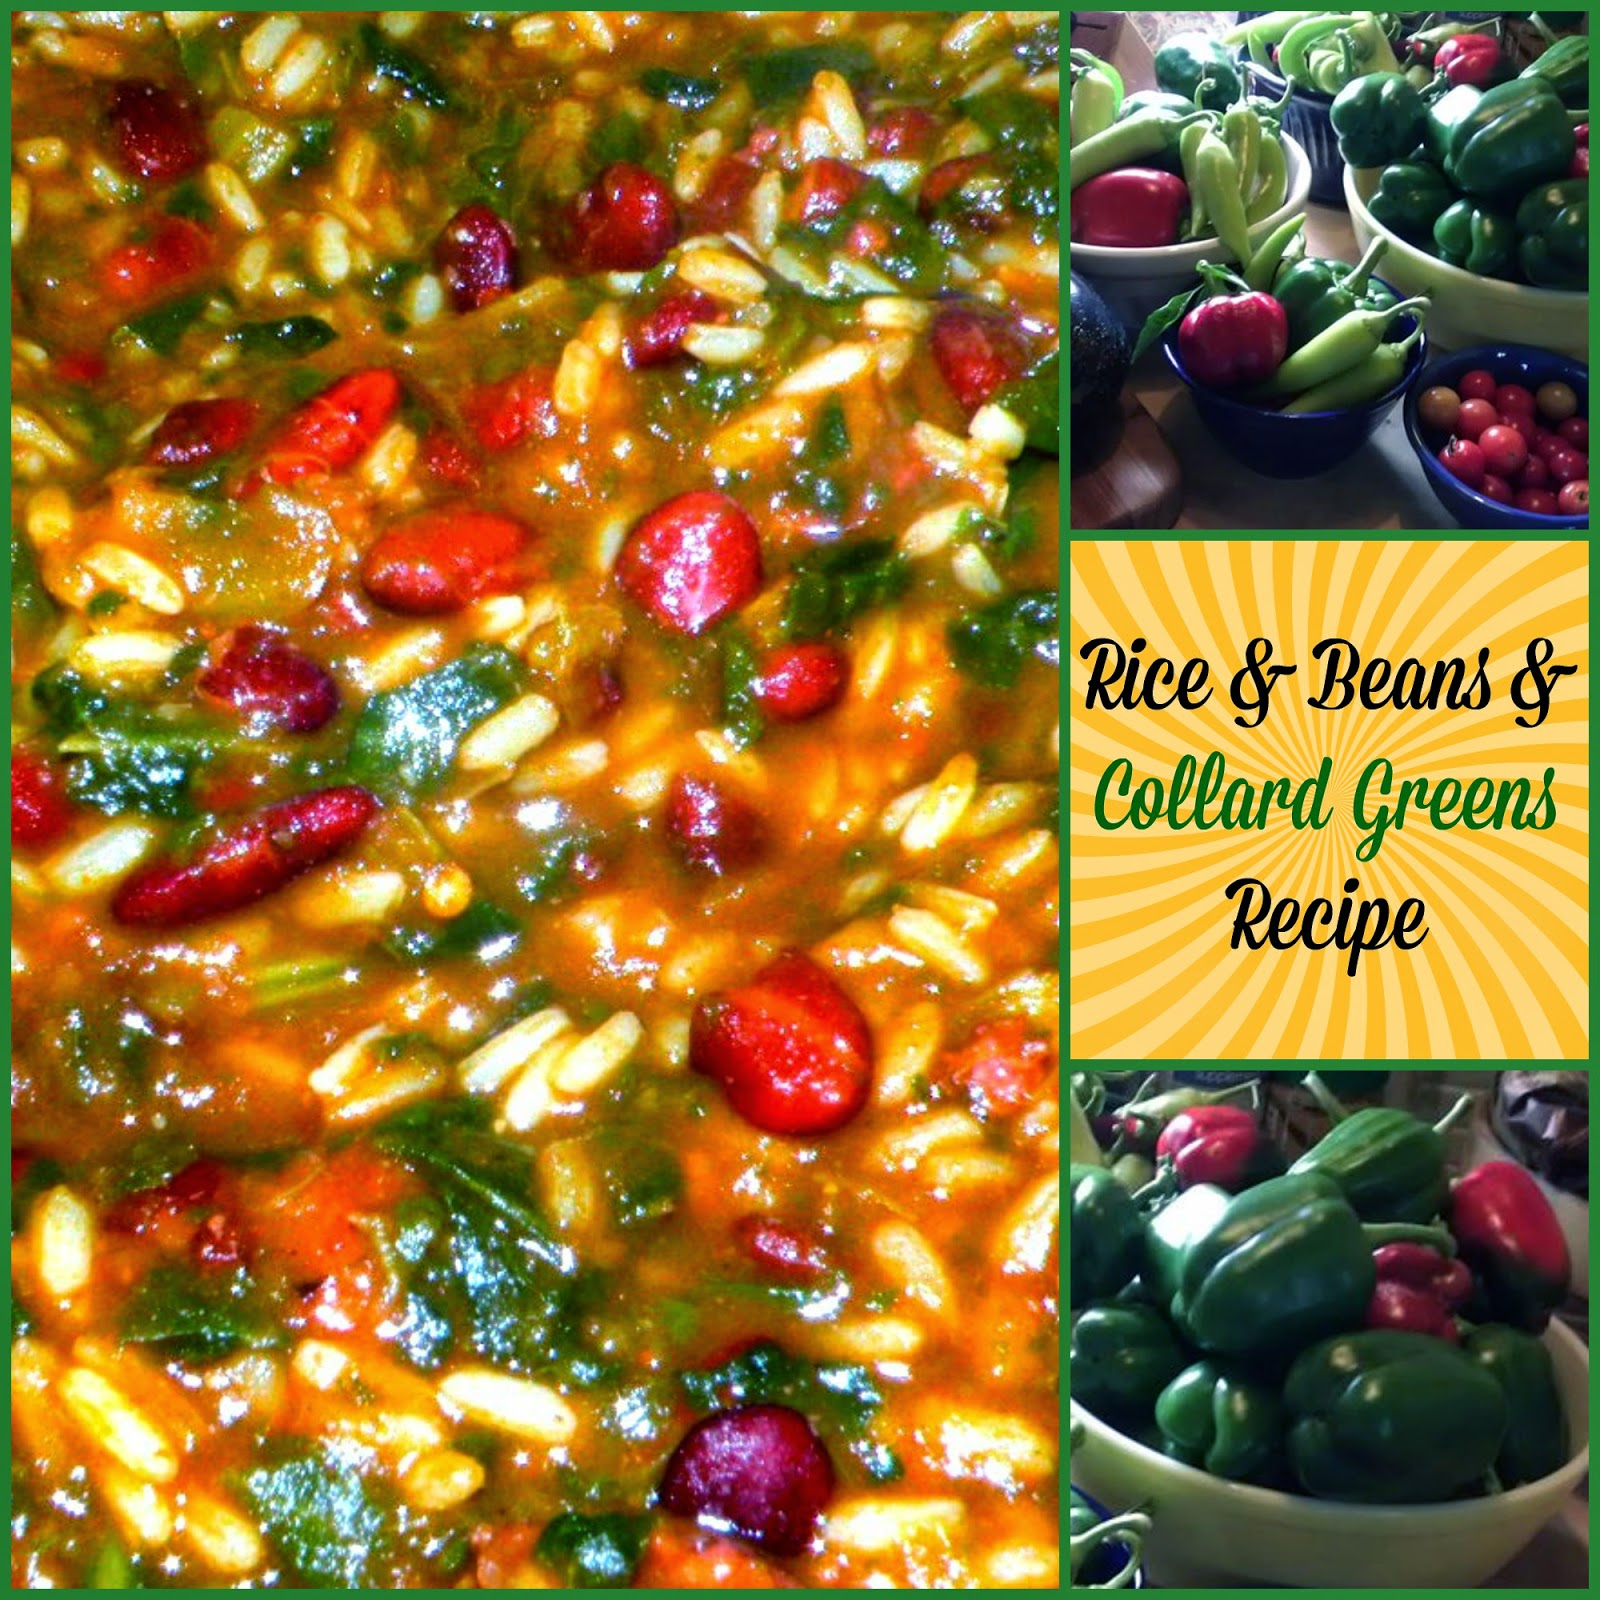 Rice Beans and Collard Greens Recipe